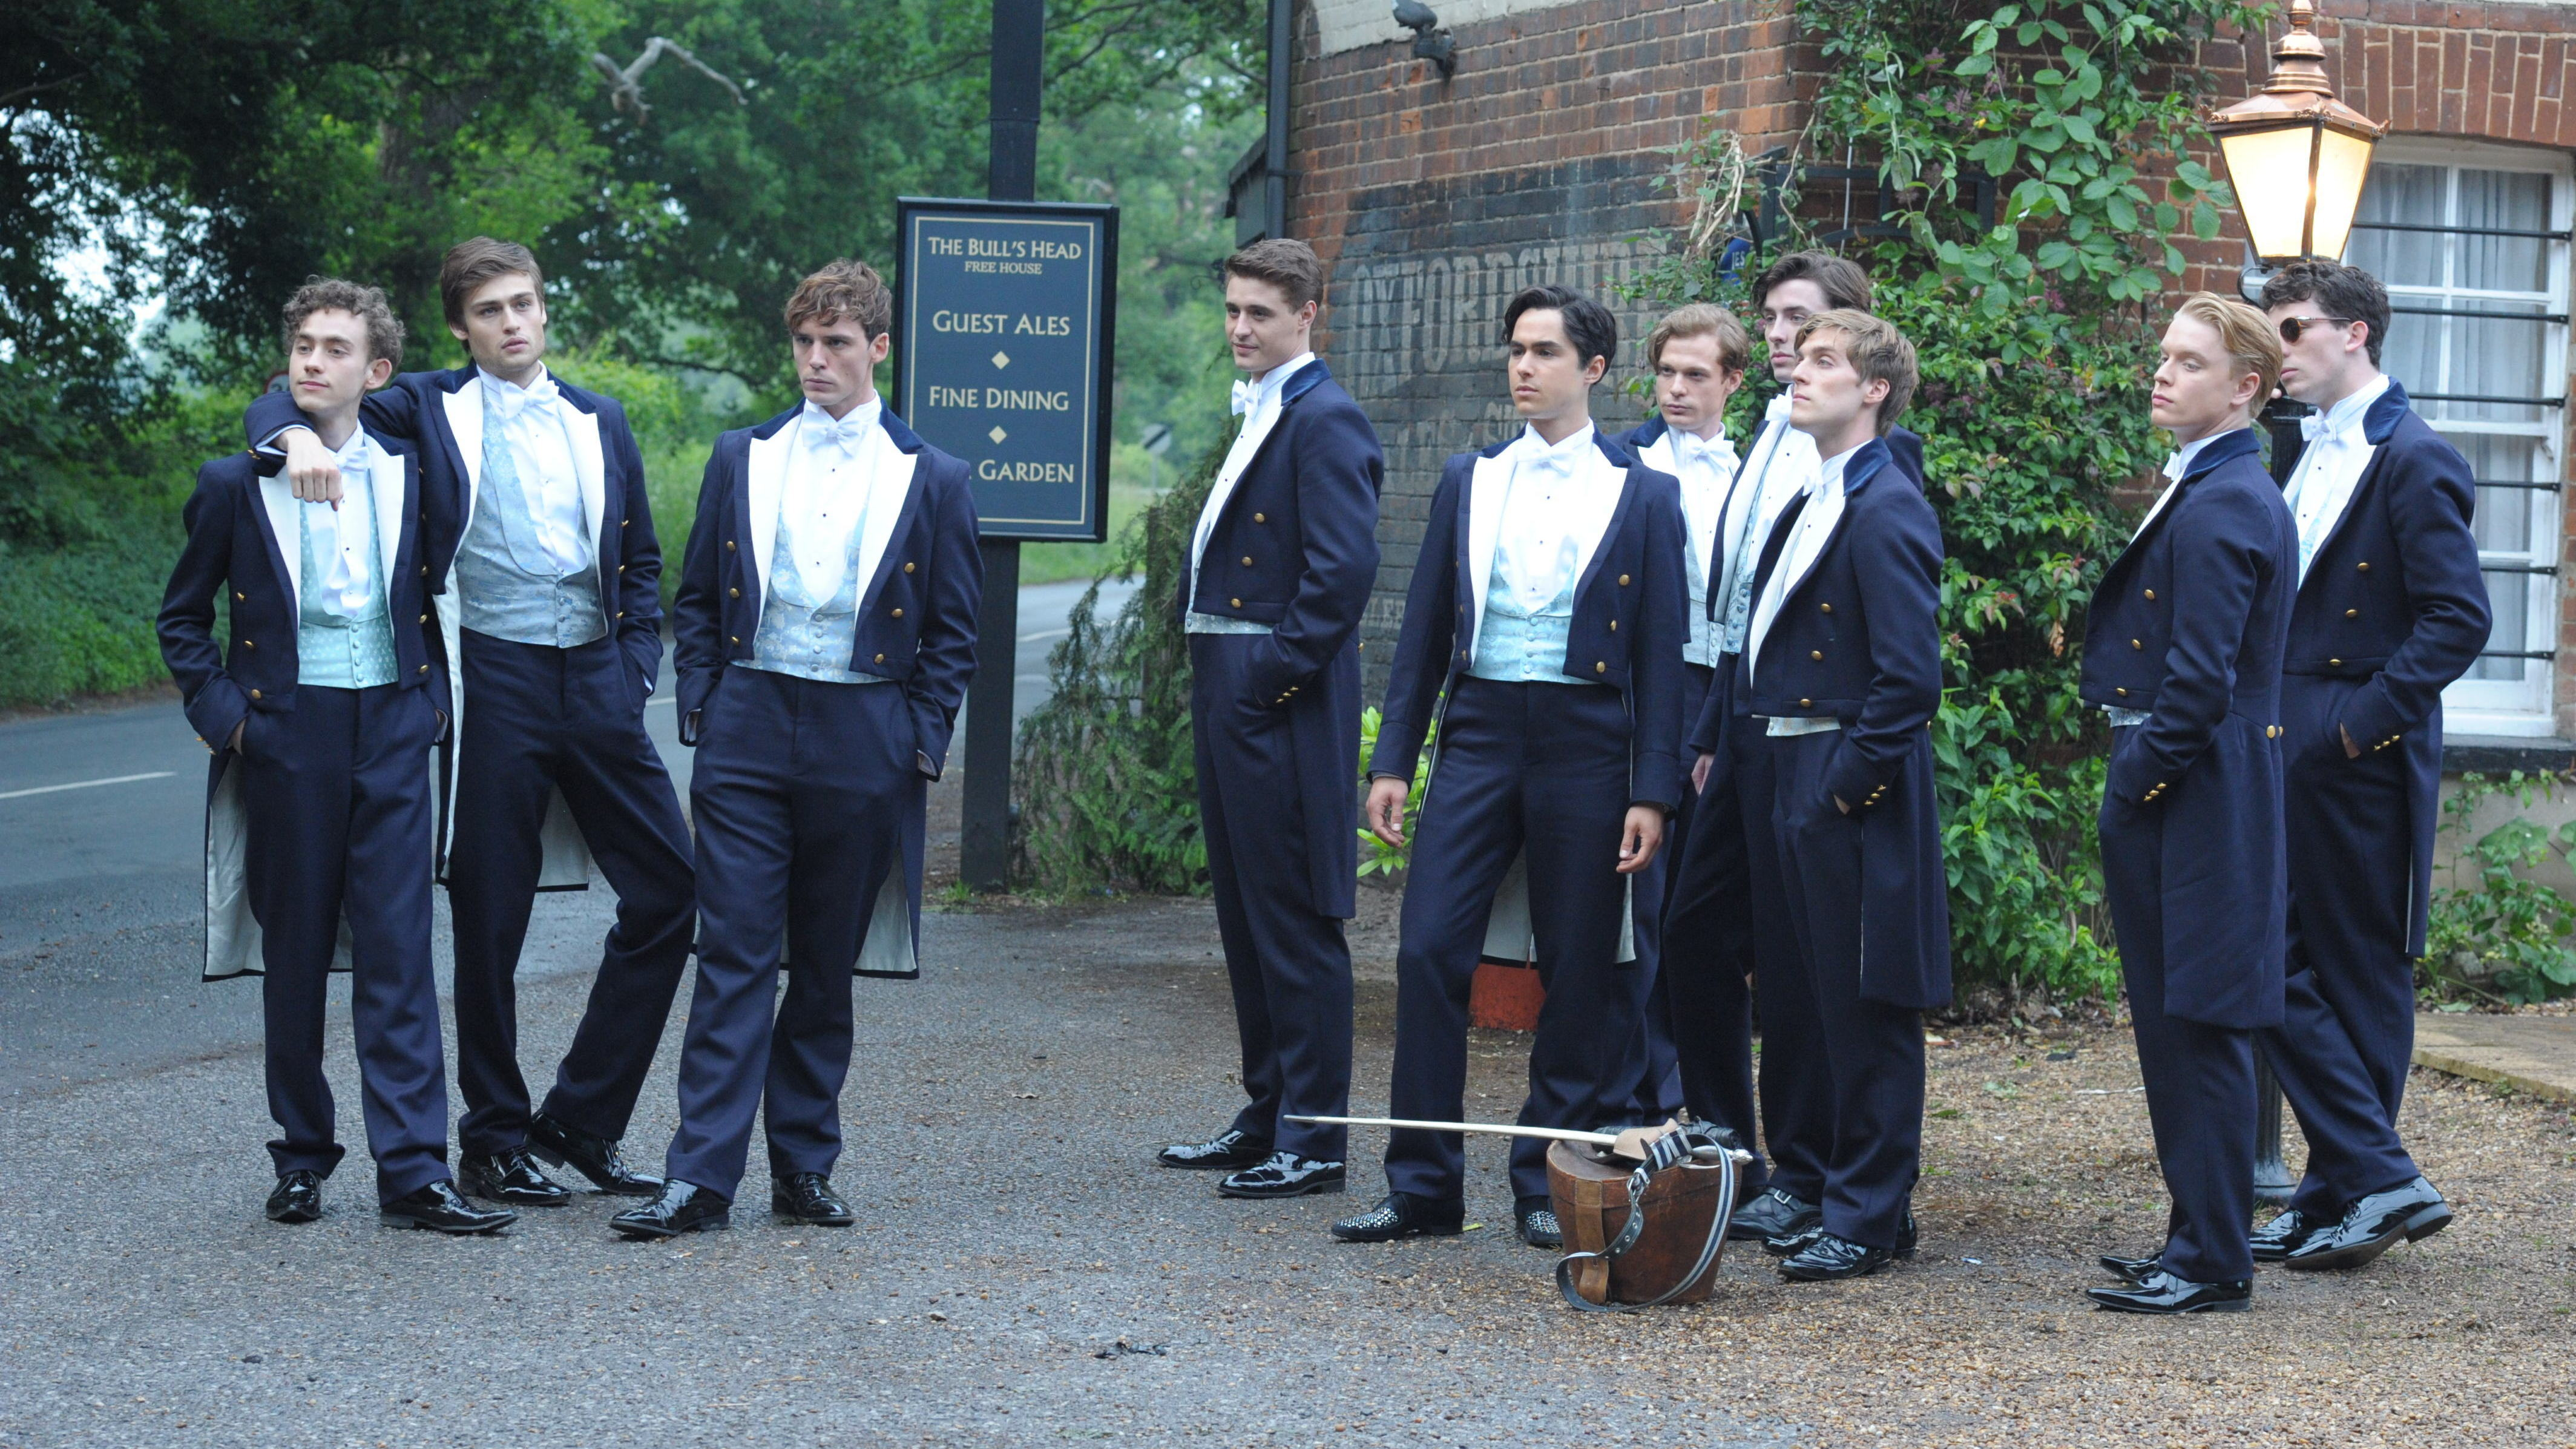 Class Warfare Over Dinner In 'The Riot Club'